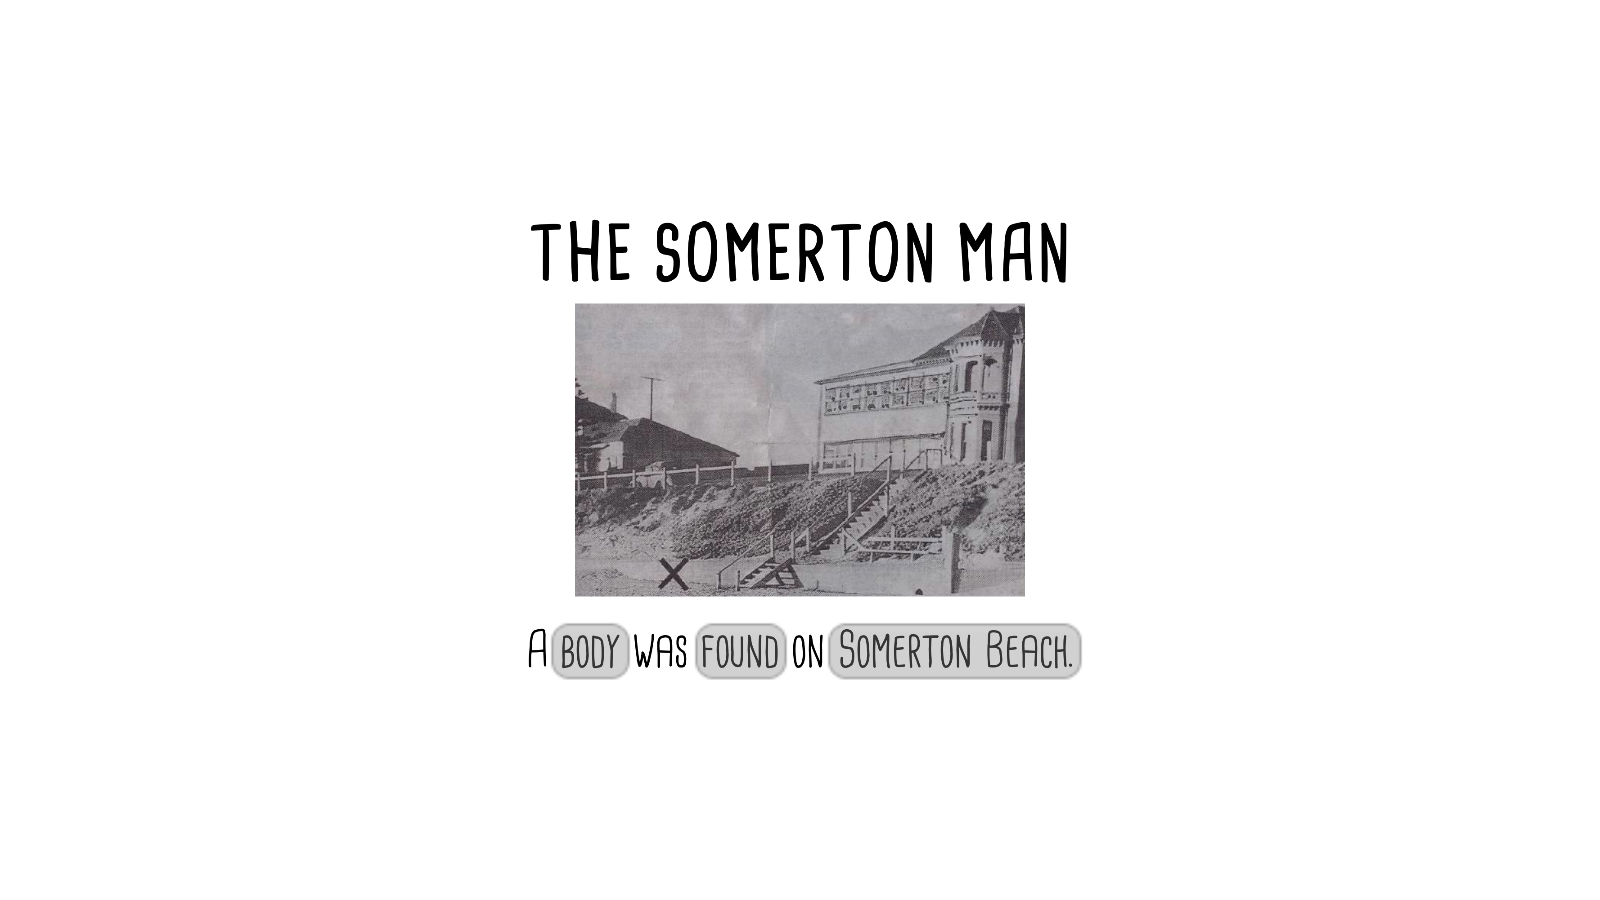 The Somerton Man